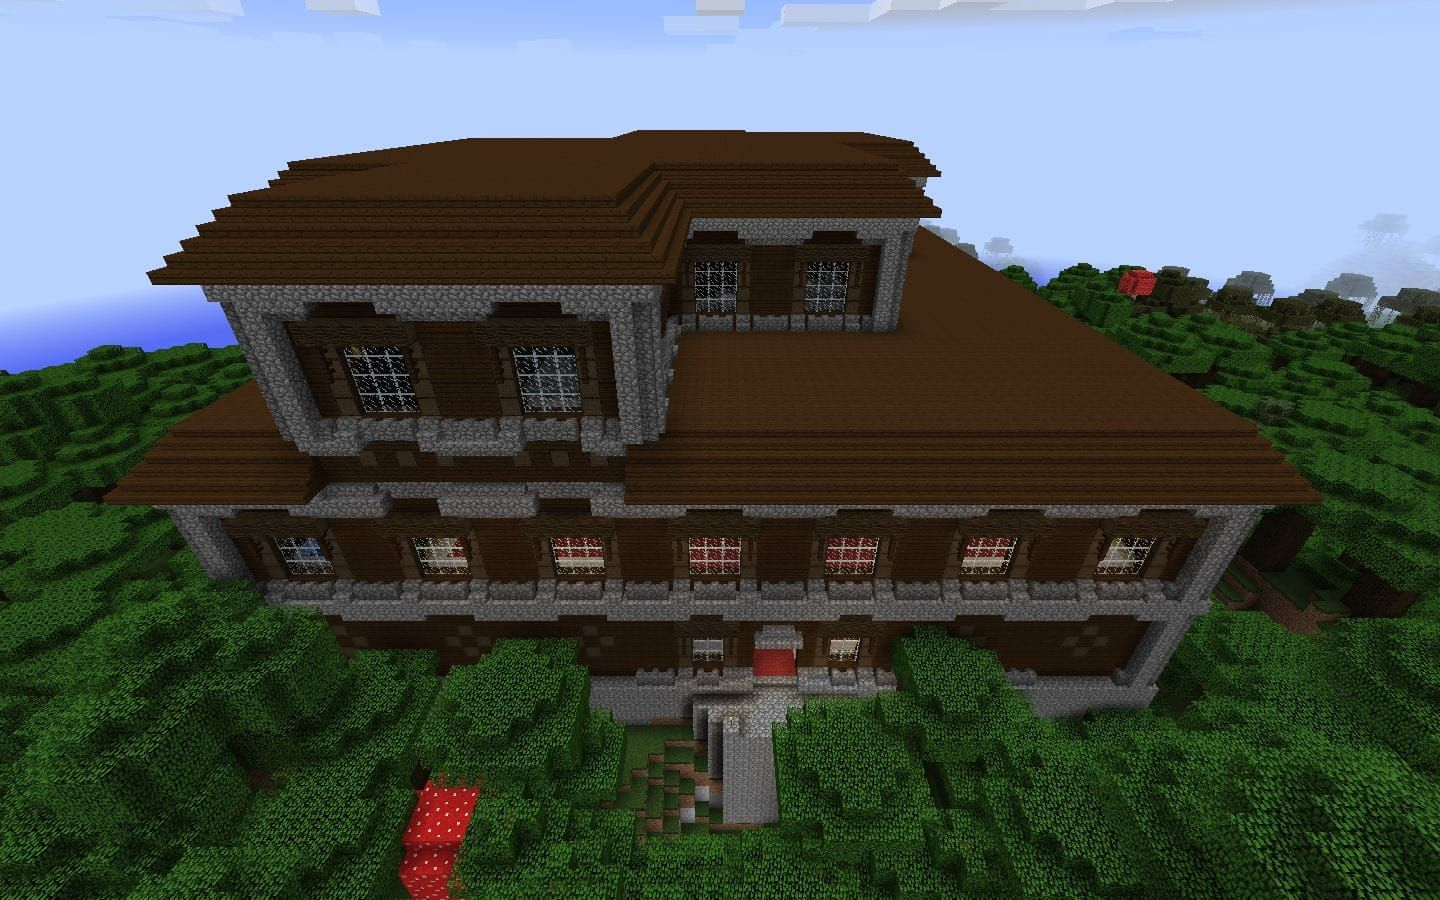 Minecraft Mansion Seed For Pc Mac Spawn On The Edge Of A Ravine Within View Of A Woodland Minecraft Mansion Minecraft House Tutorials Minecraft House Designs